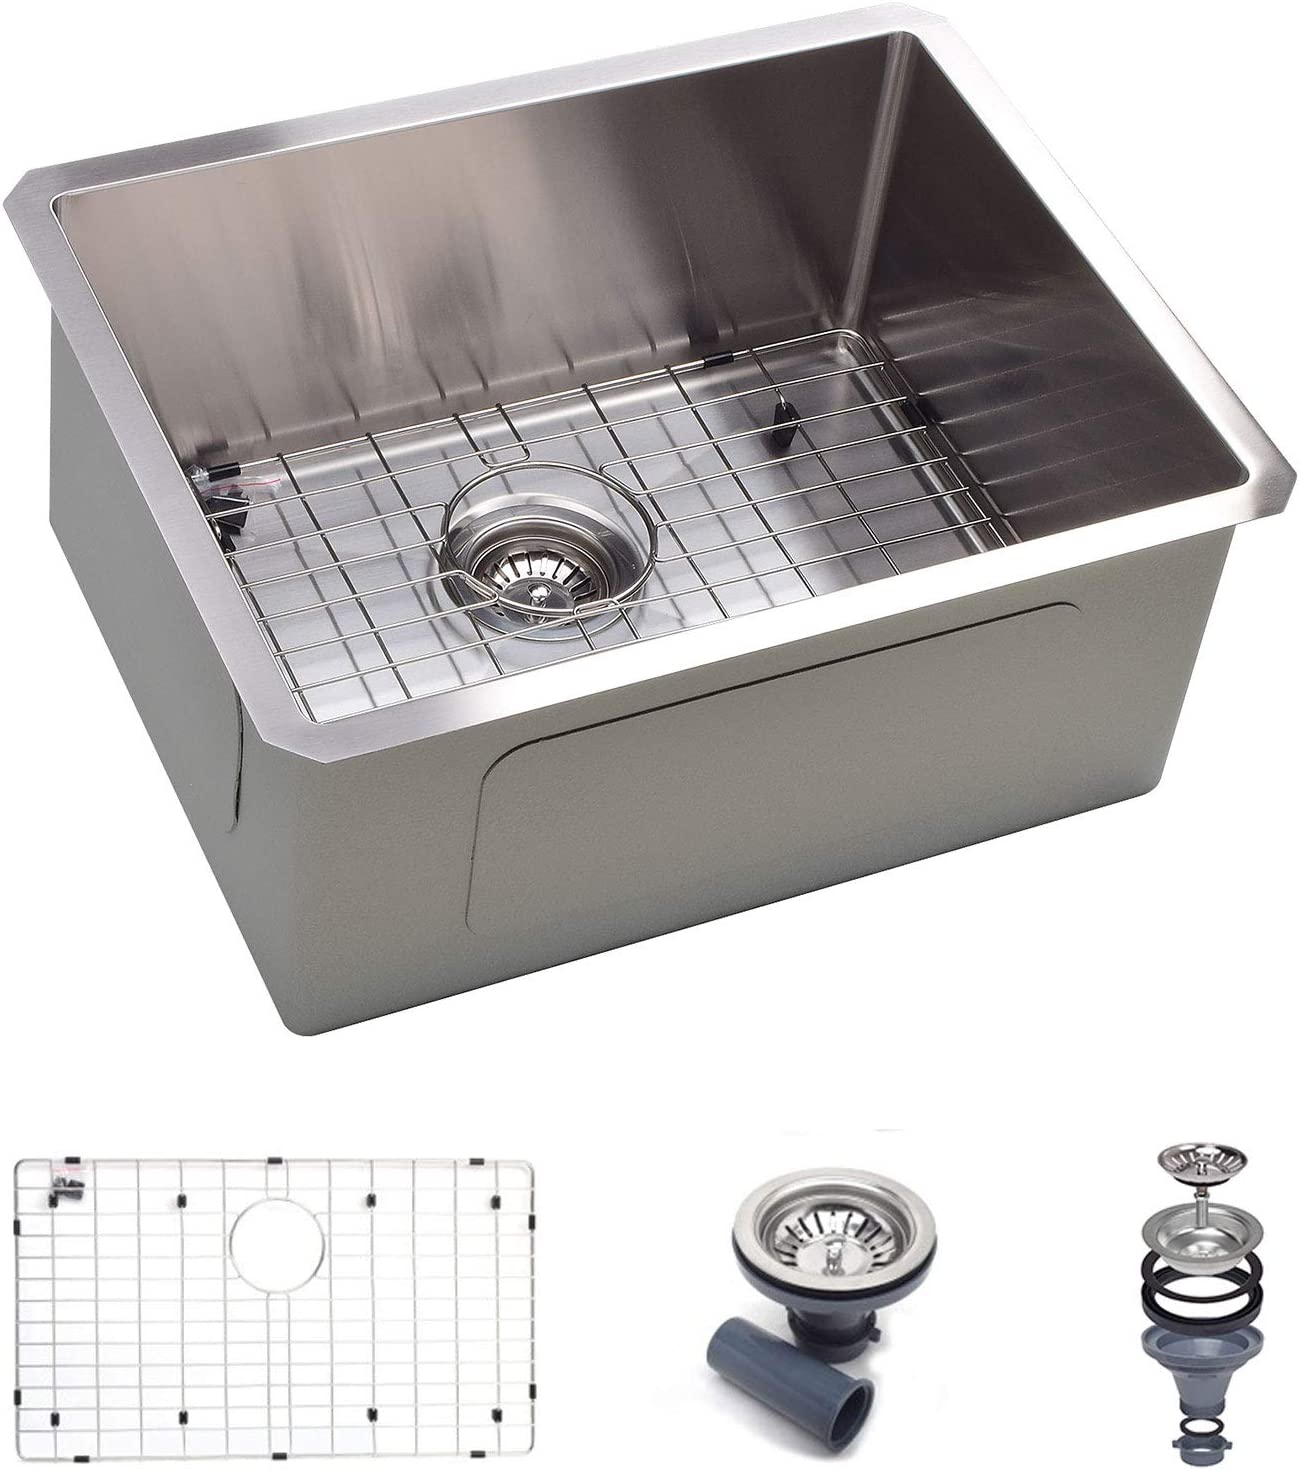 "Koozzo 23"" Undermount Kitchen Sink, Rectangular Single bowl, Stainless Steel,18 Gauge, Includes Strainer/Grid"